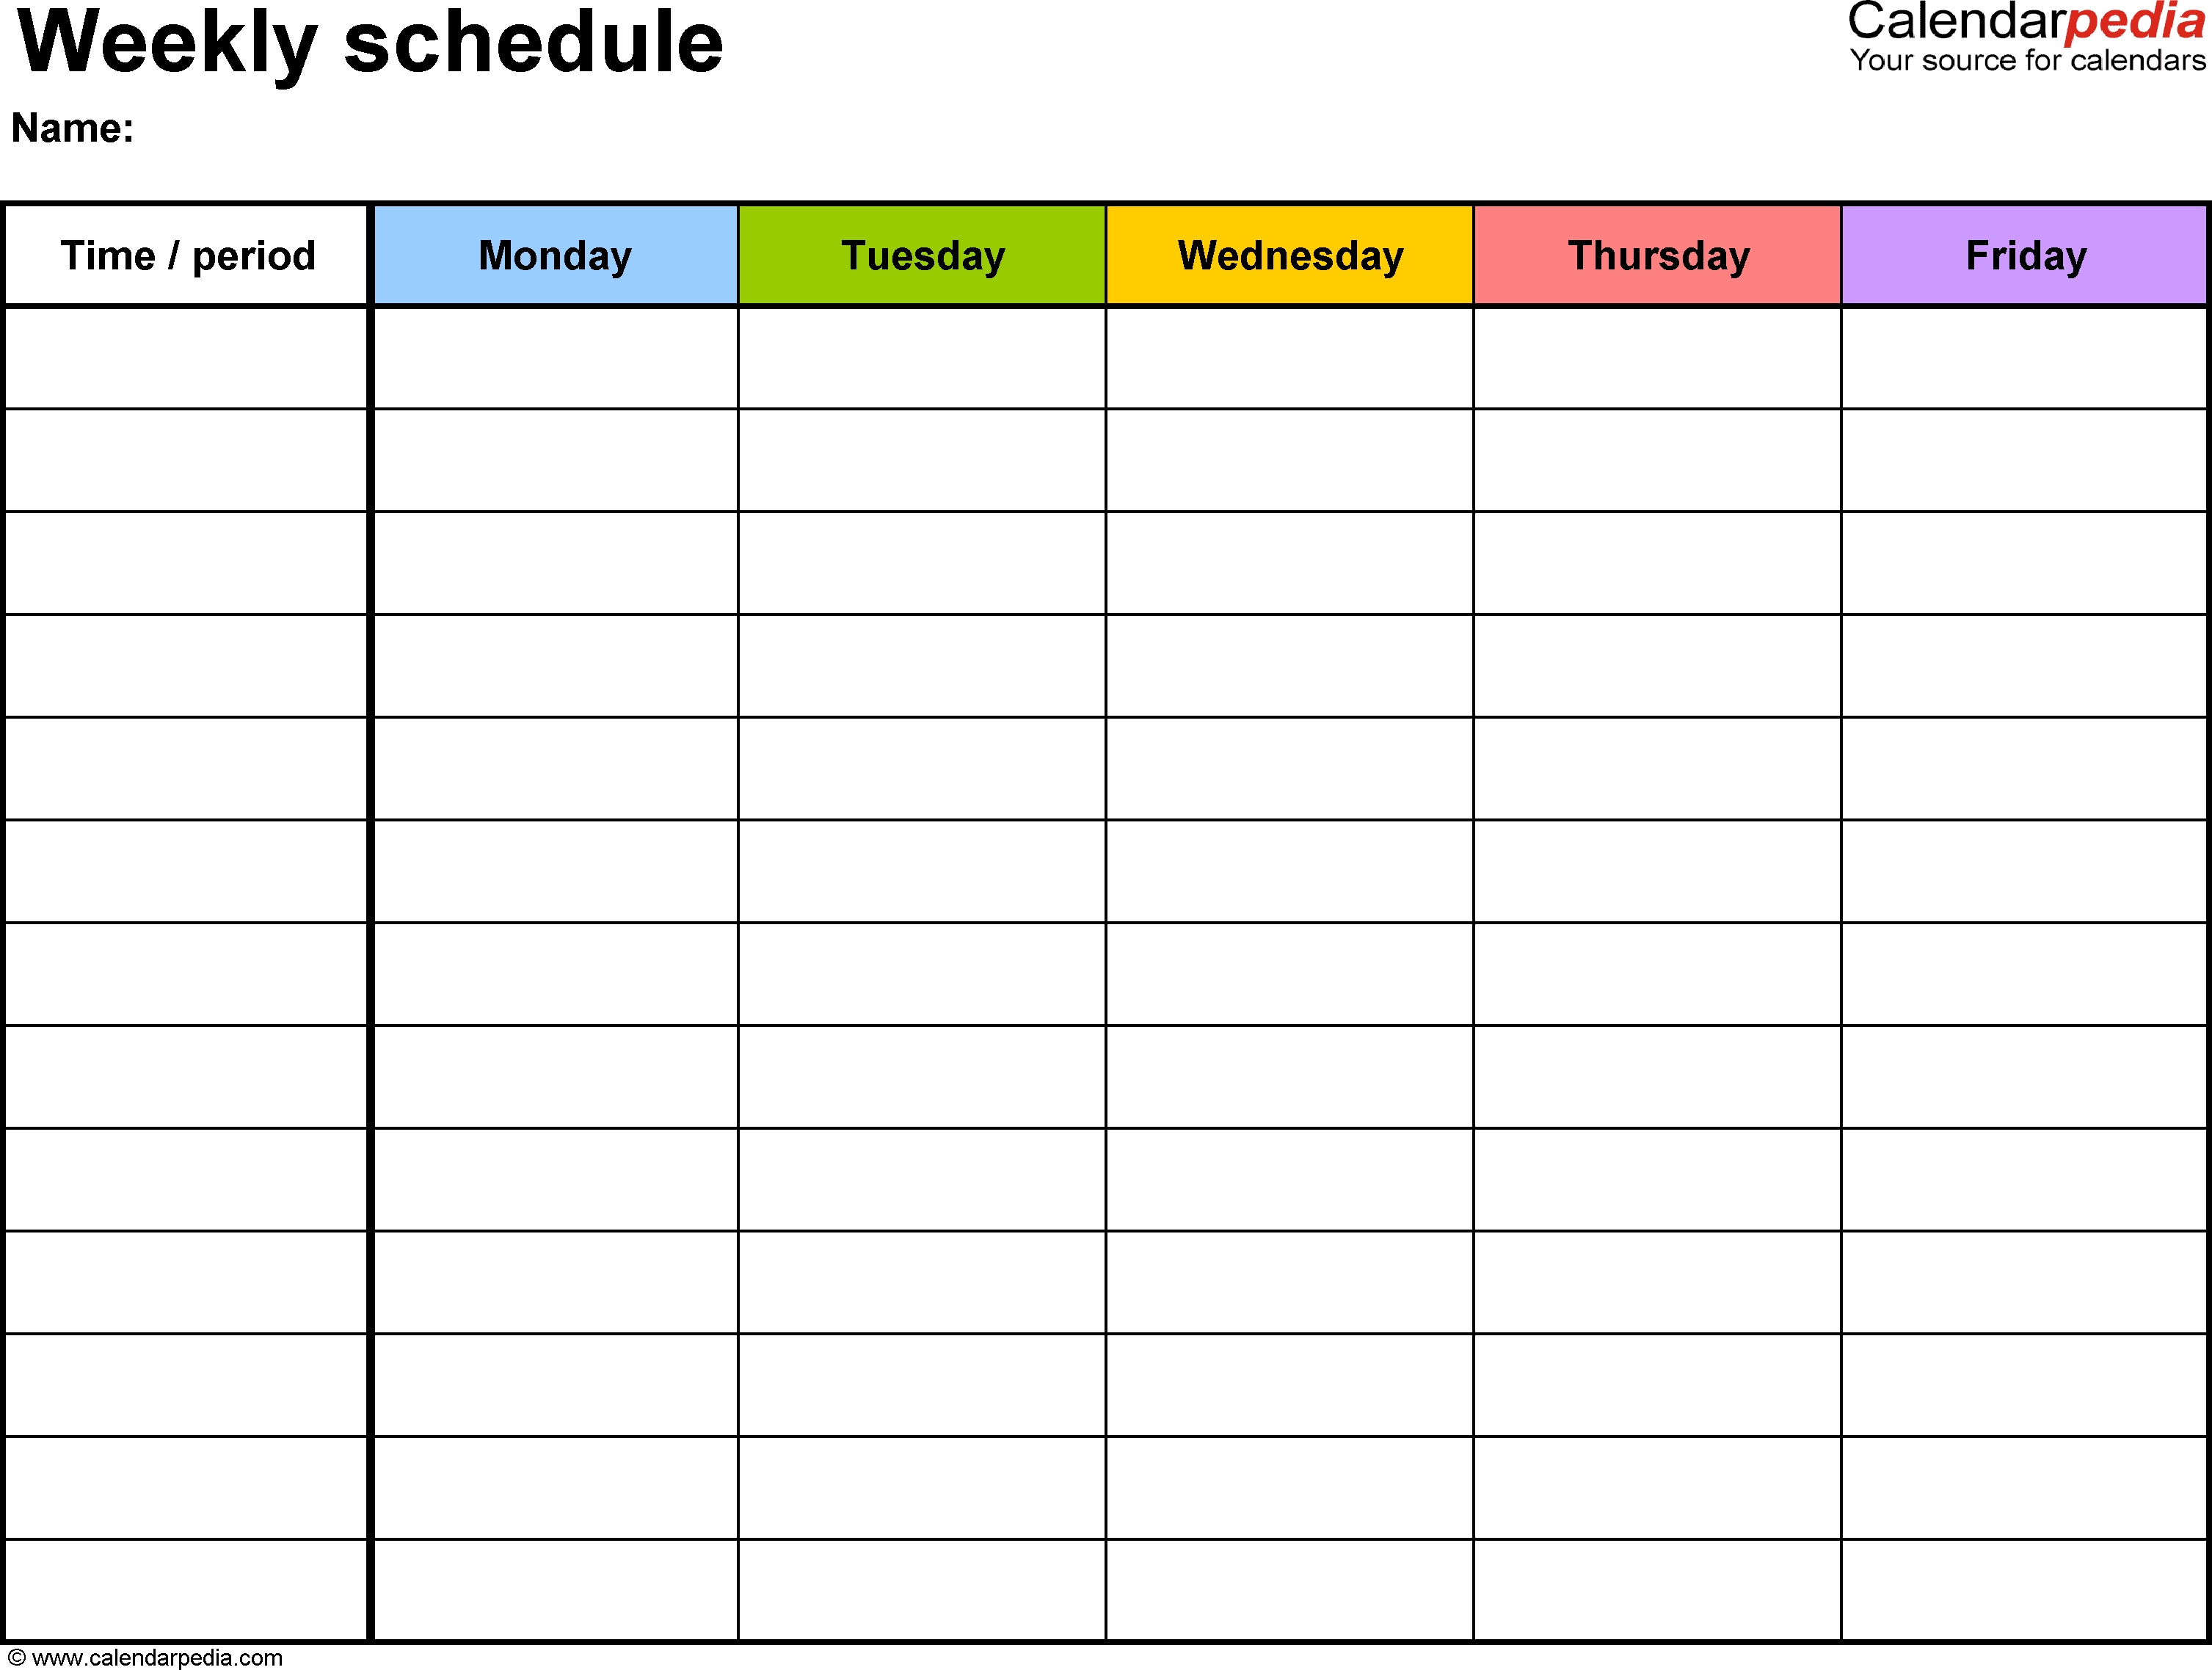 Free Weekly Schedule Templates For Word - 18 Templates-5 Day Weekly Planner Template